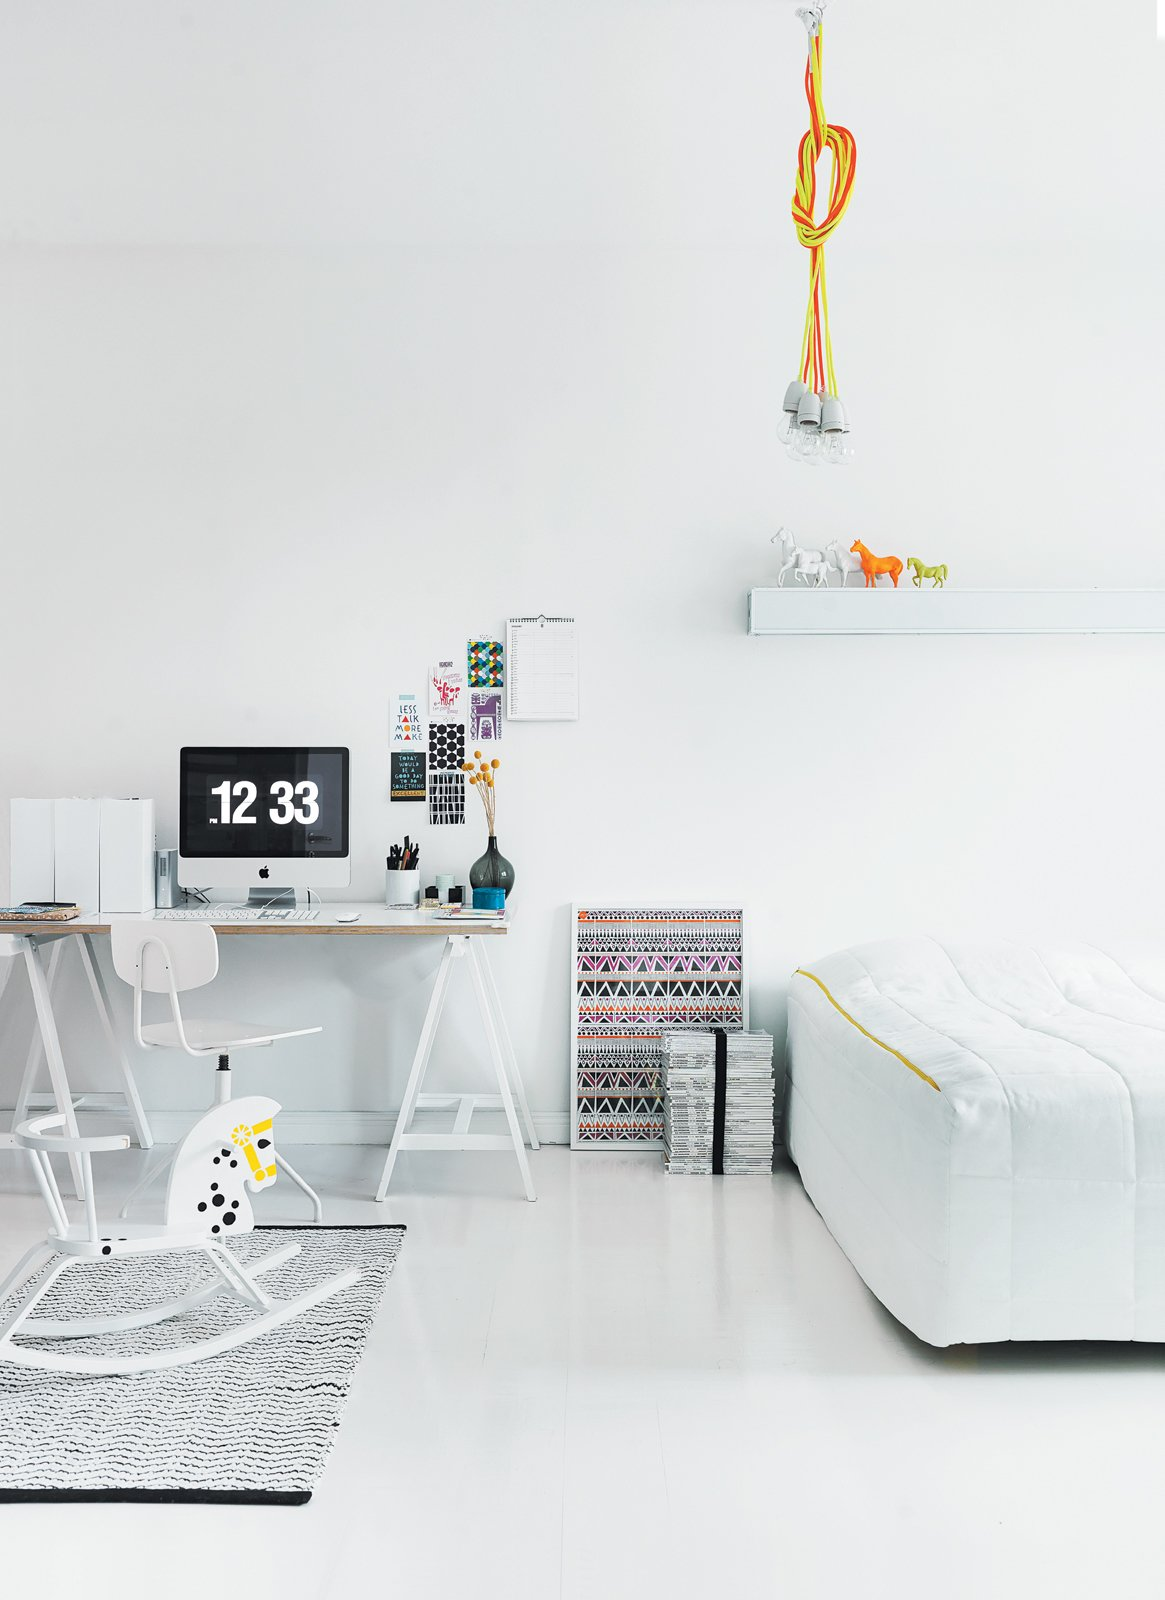 #interior #design #interiordesign #masterbedroom #couchbed #ikea #ikeadesk #rockingchair #rockinghorse #modern #budget #susannavento #jussivento #helsinki #apartment #cozy #quirky #whiteinterior #white #palette #blackaccents #neon #glow #trestledesk #desk #huuto #homeoffice #lighting #chordlights #chordpendantlight   36+ Interior Color Pop Ideas For Modern Homes by Dwell